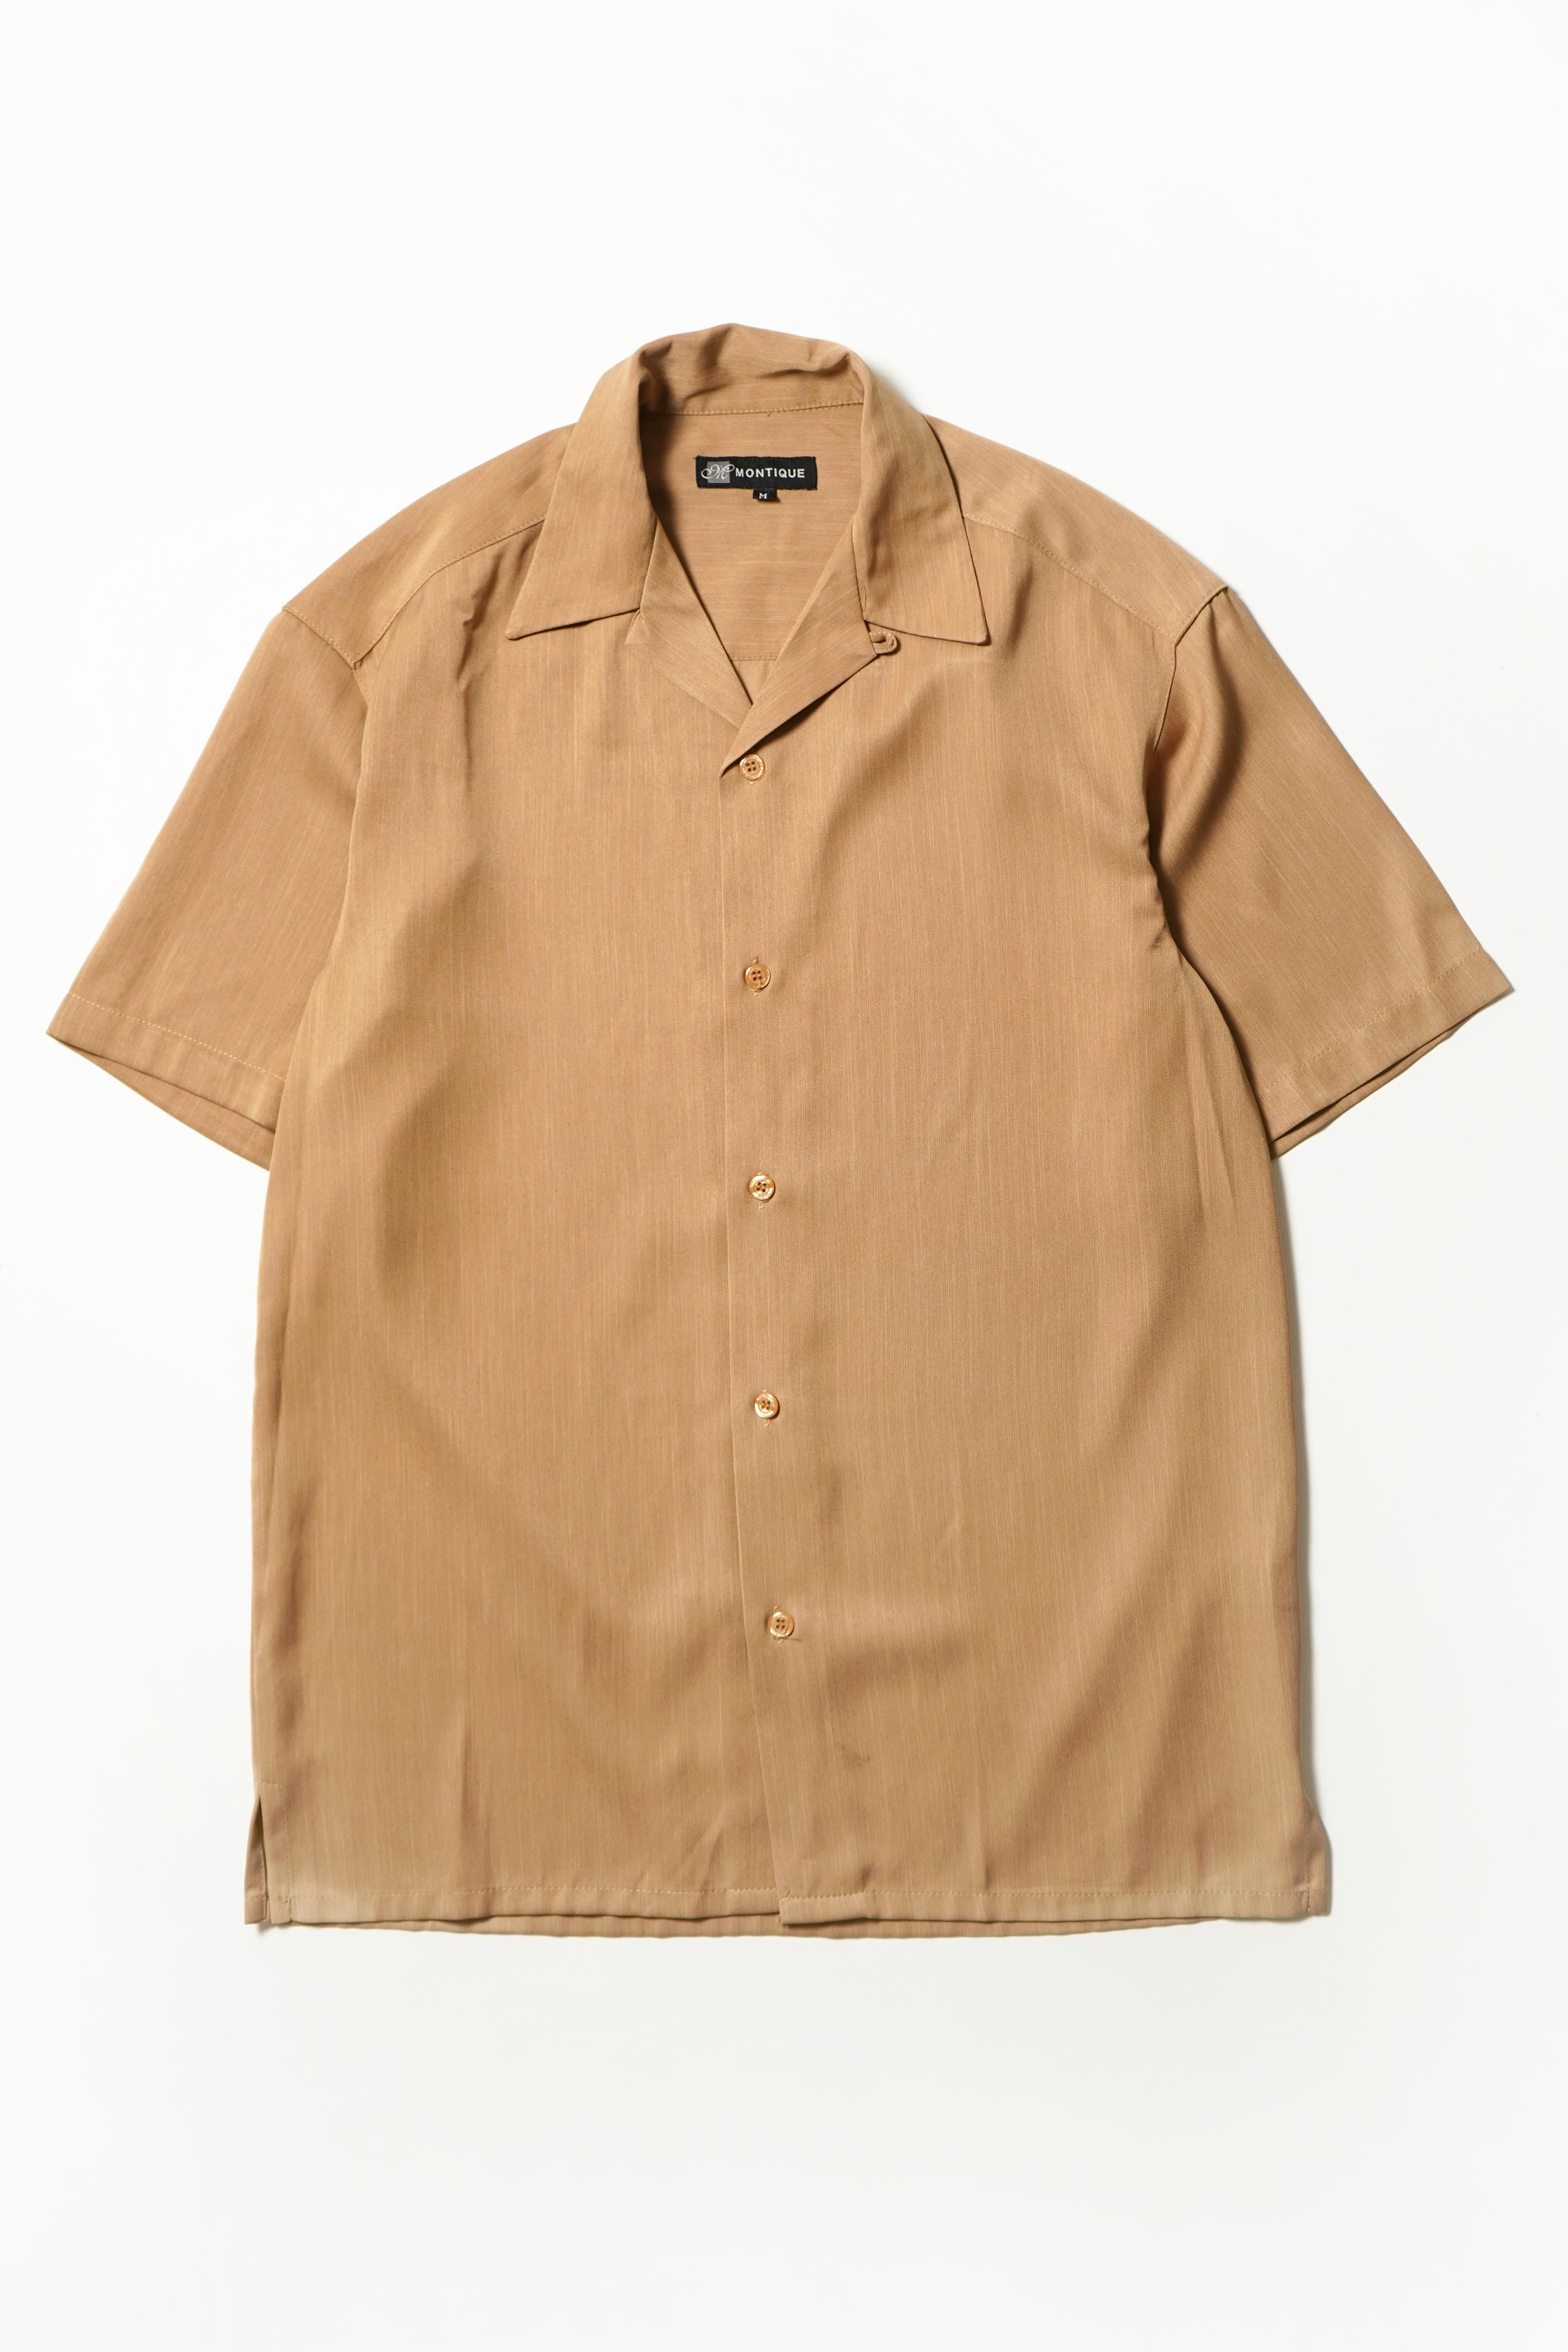 OPEN COLLAR S/S SHIRT BEIGE